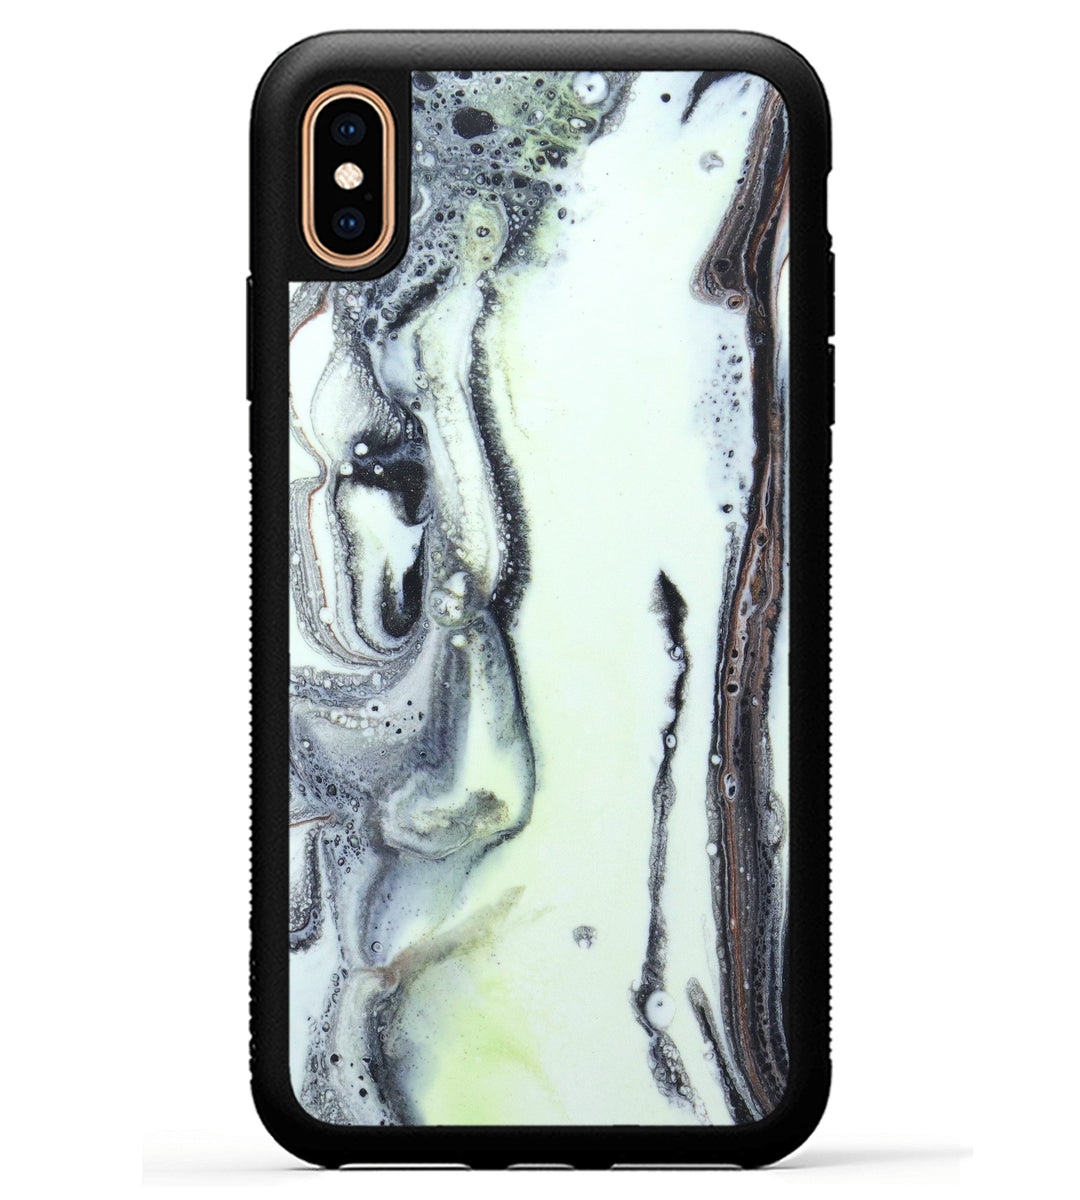 iPhone Xs Max Case - Patti (Black & White, 345864)